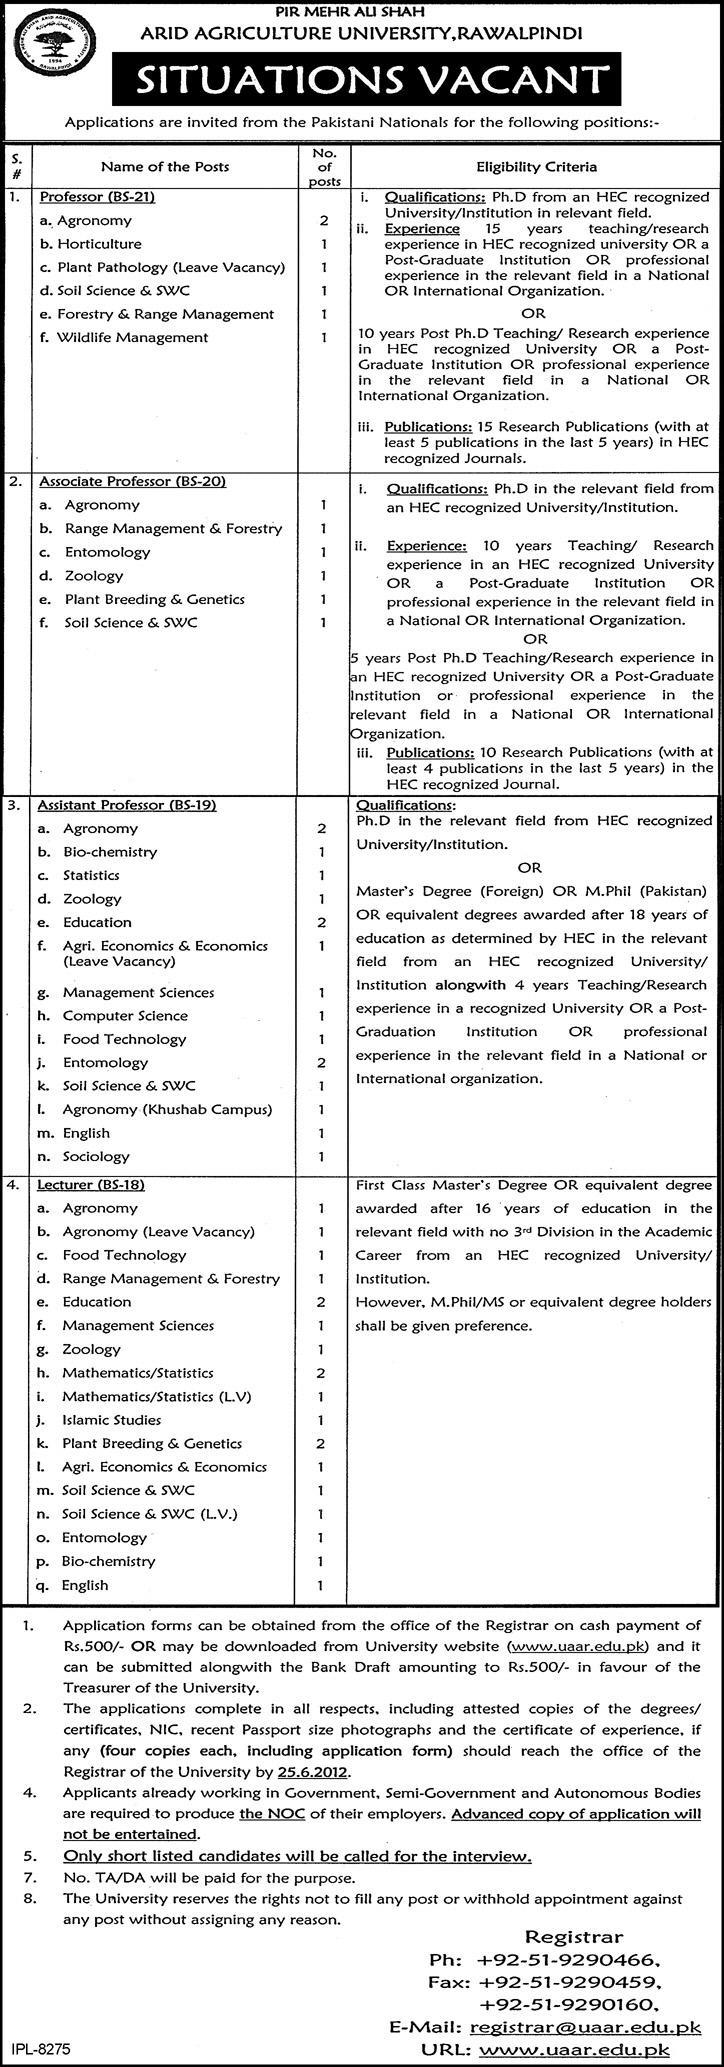 Jobs In Arid Agriculture University Rawalpindi 2012 Jobs In Arid Agriculture University Rawalpindi 2012